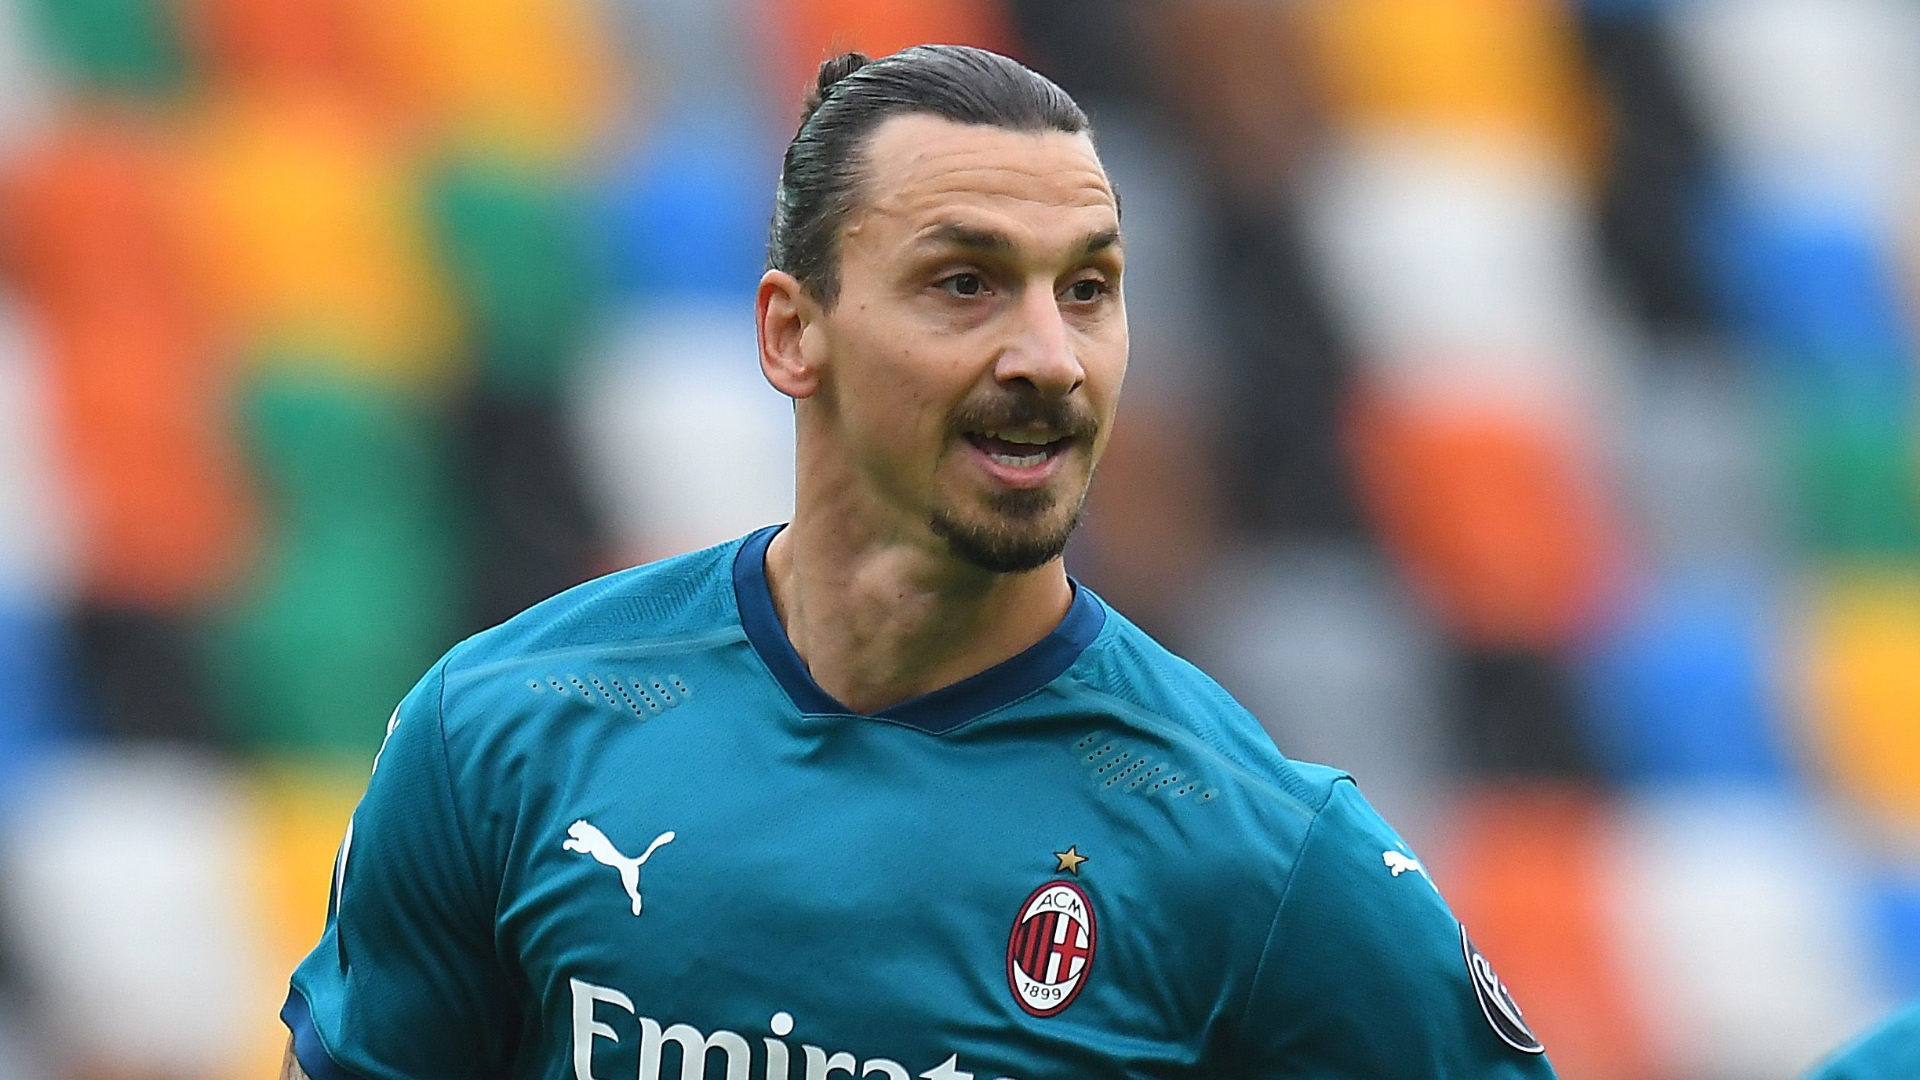 Long time no see' - Ibrahimovic hints at Sweden international return with cryptic tweet | Goal.com